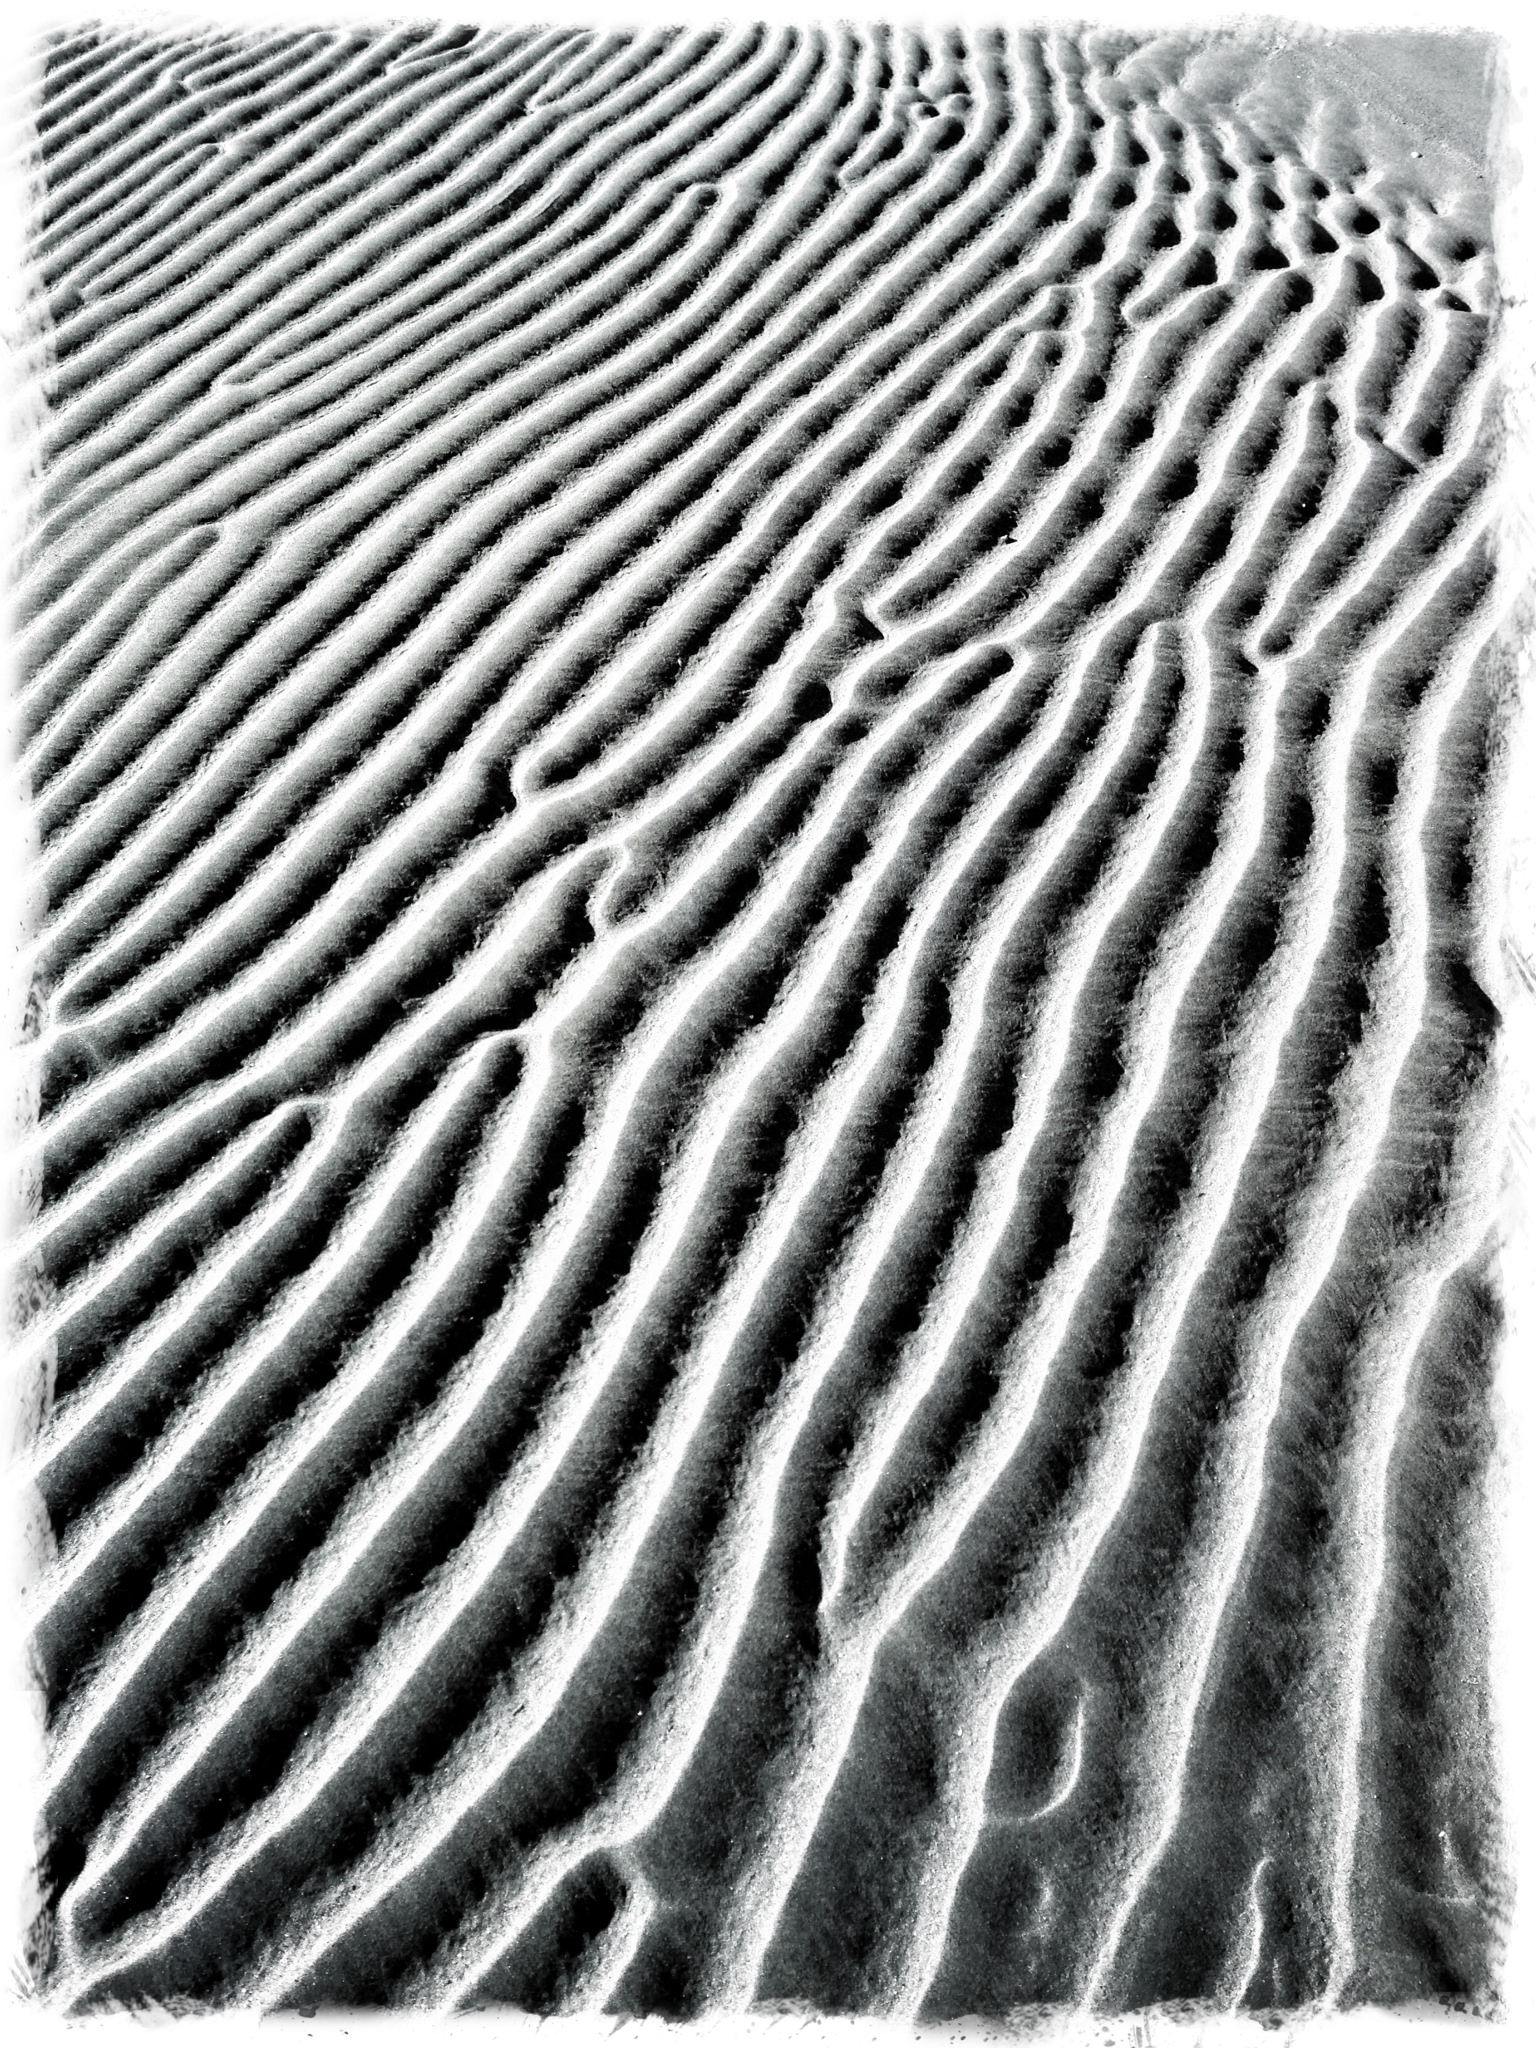 Ripples in Sand, Wester ross